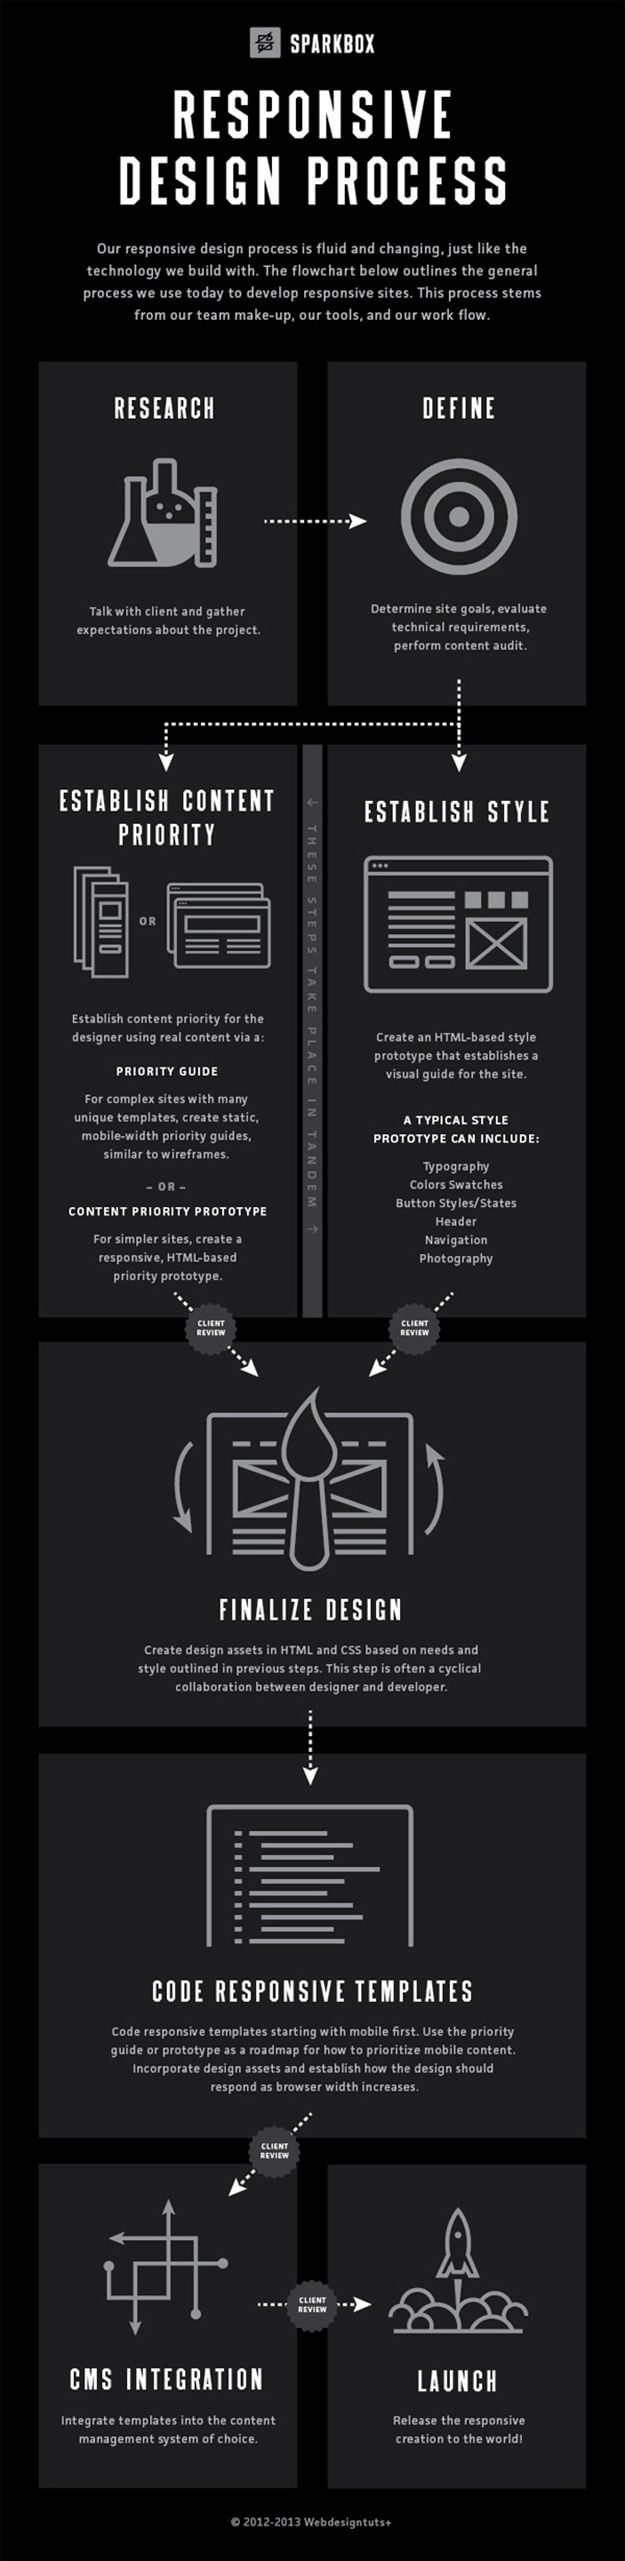 INFOGRAPHIC: Responsive Design Process